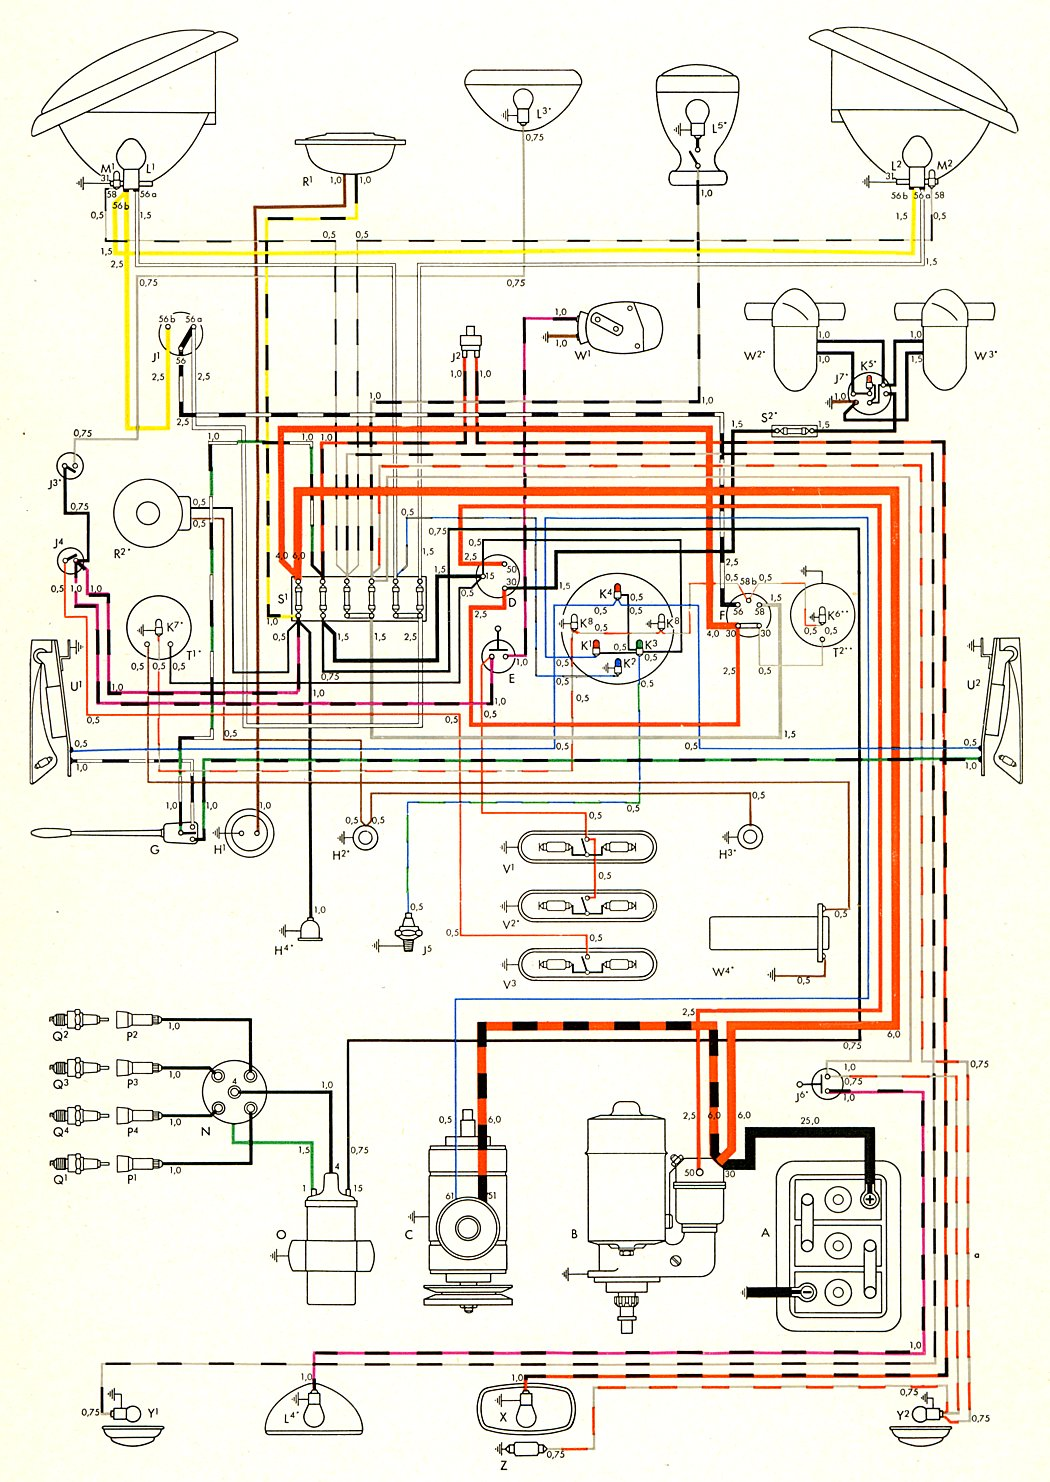 1957 bus wiring diagram thegoldenbug com Volkswagen Engine Diagram 1957 bus wiring diagram